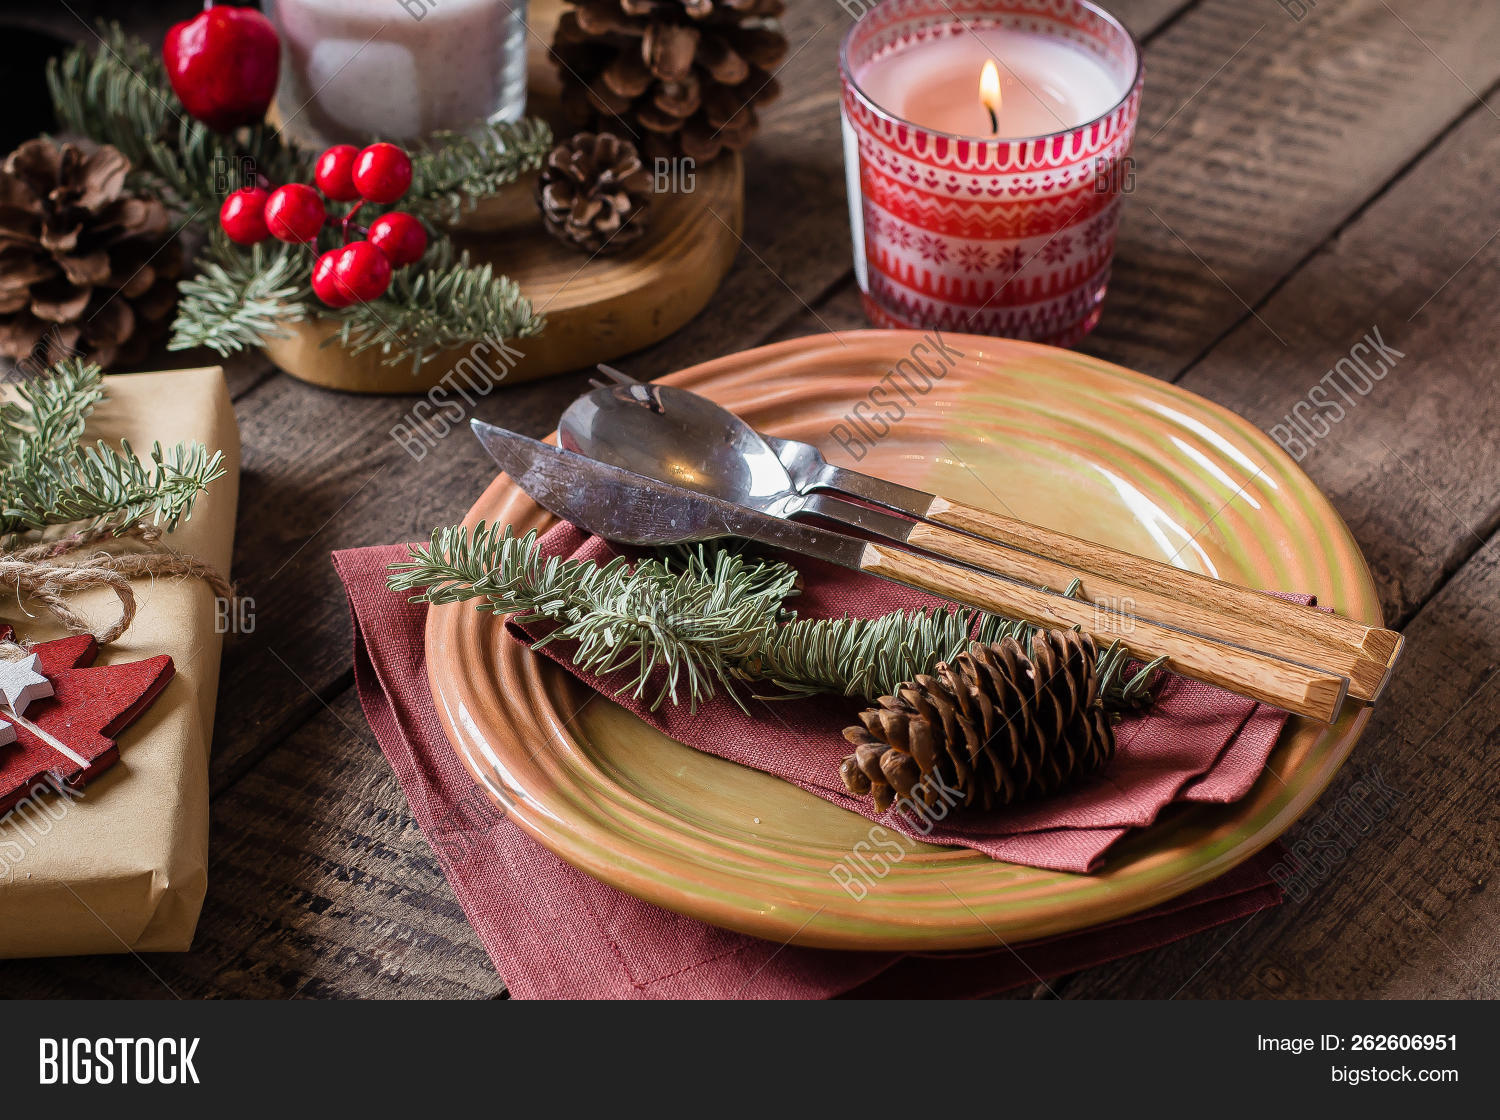 Christmas Setting Table. Dinner plate, silverware, fir tree, gift boxe, candle and festive decoration. Holiday Food Concept. Top view